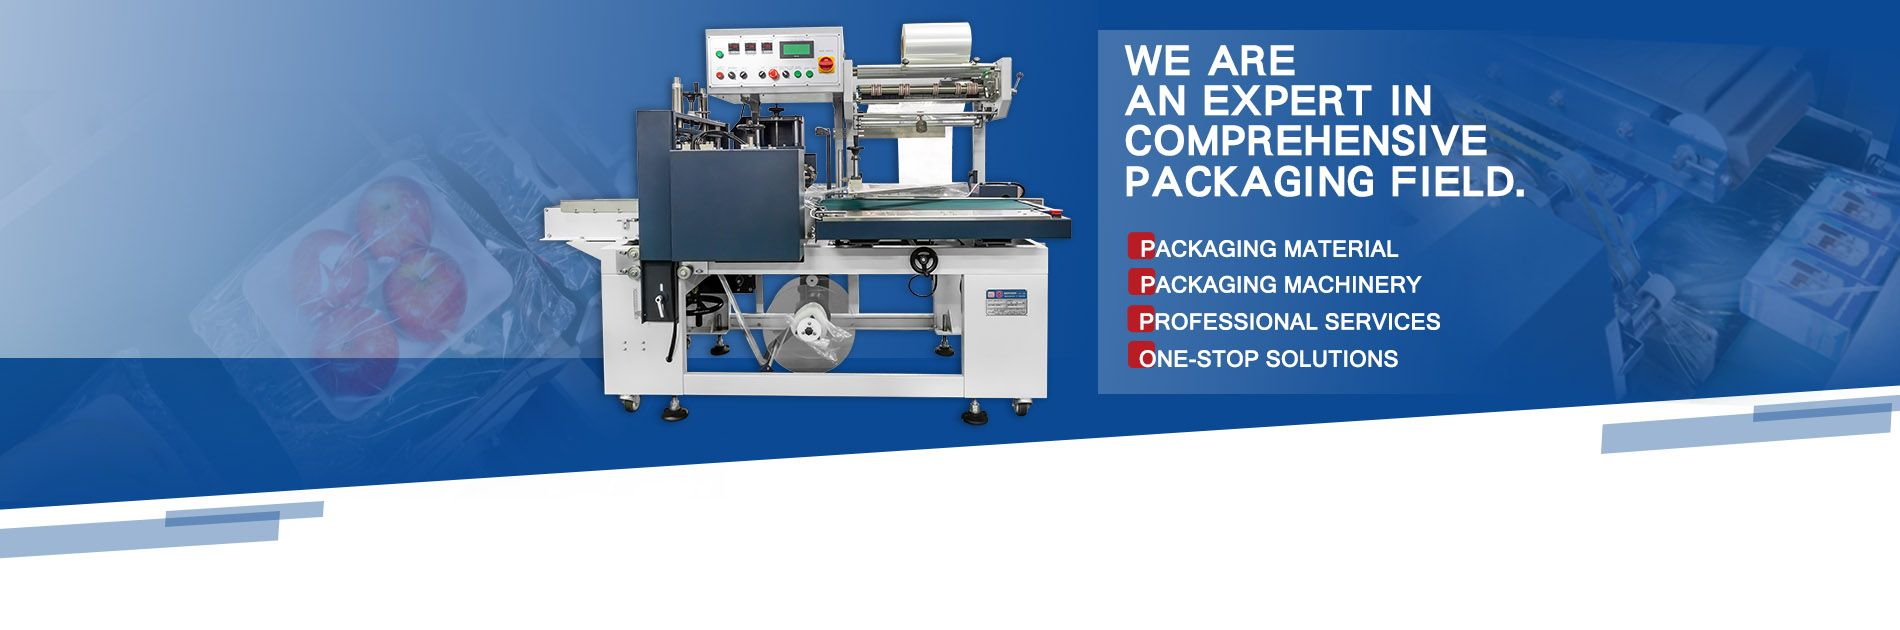 Expert in Total Packaging Solution